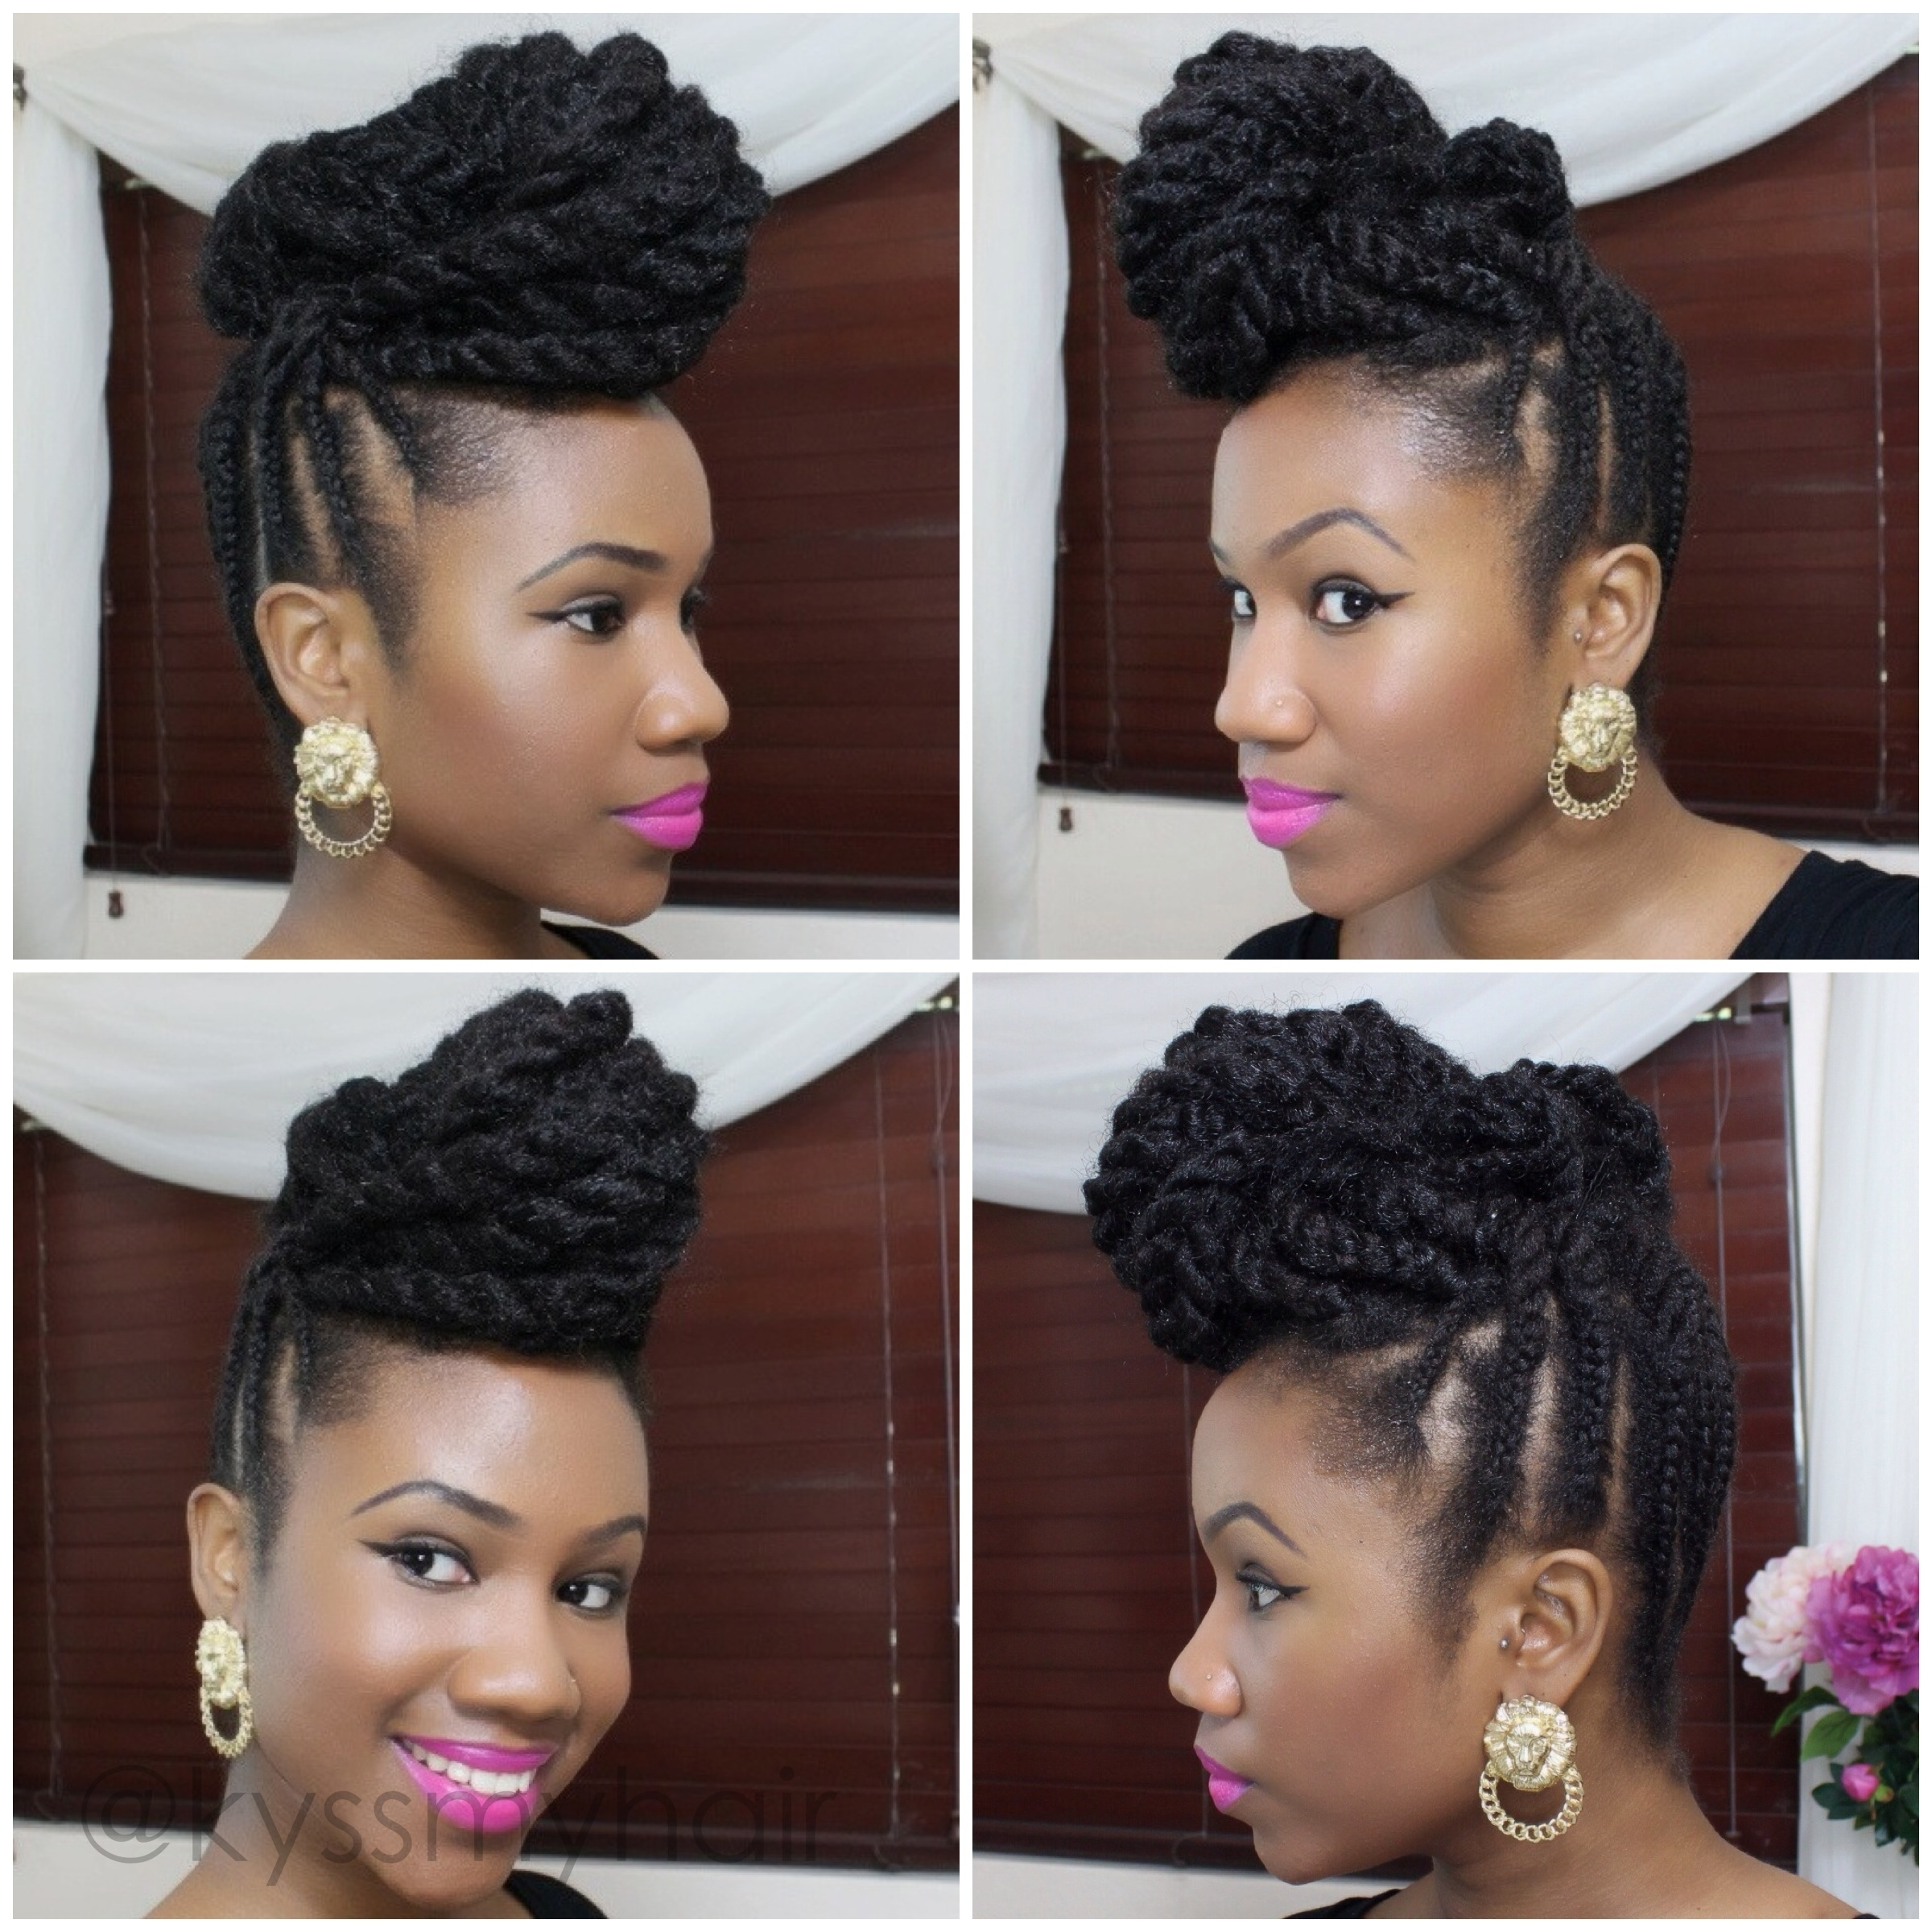 Photo: Natural Hair Braided Updo Hairstyles Braided Updo On Natural Pertaining To Braided Updo Hairstyles For Natural Hair (View 11 of 15)